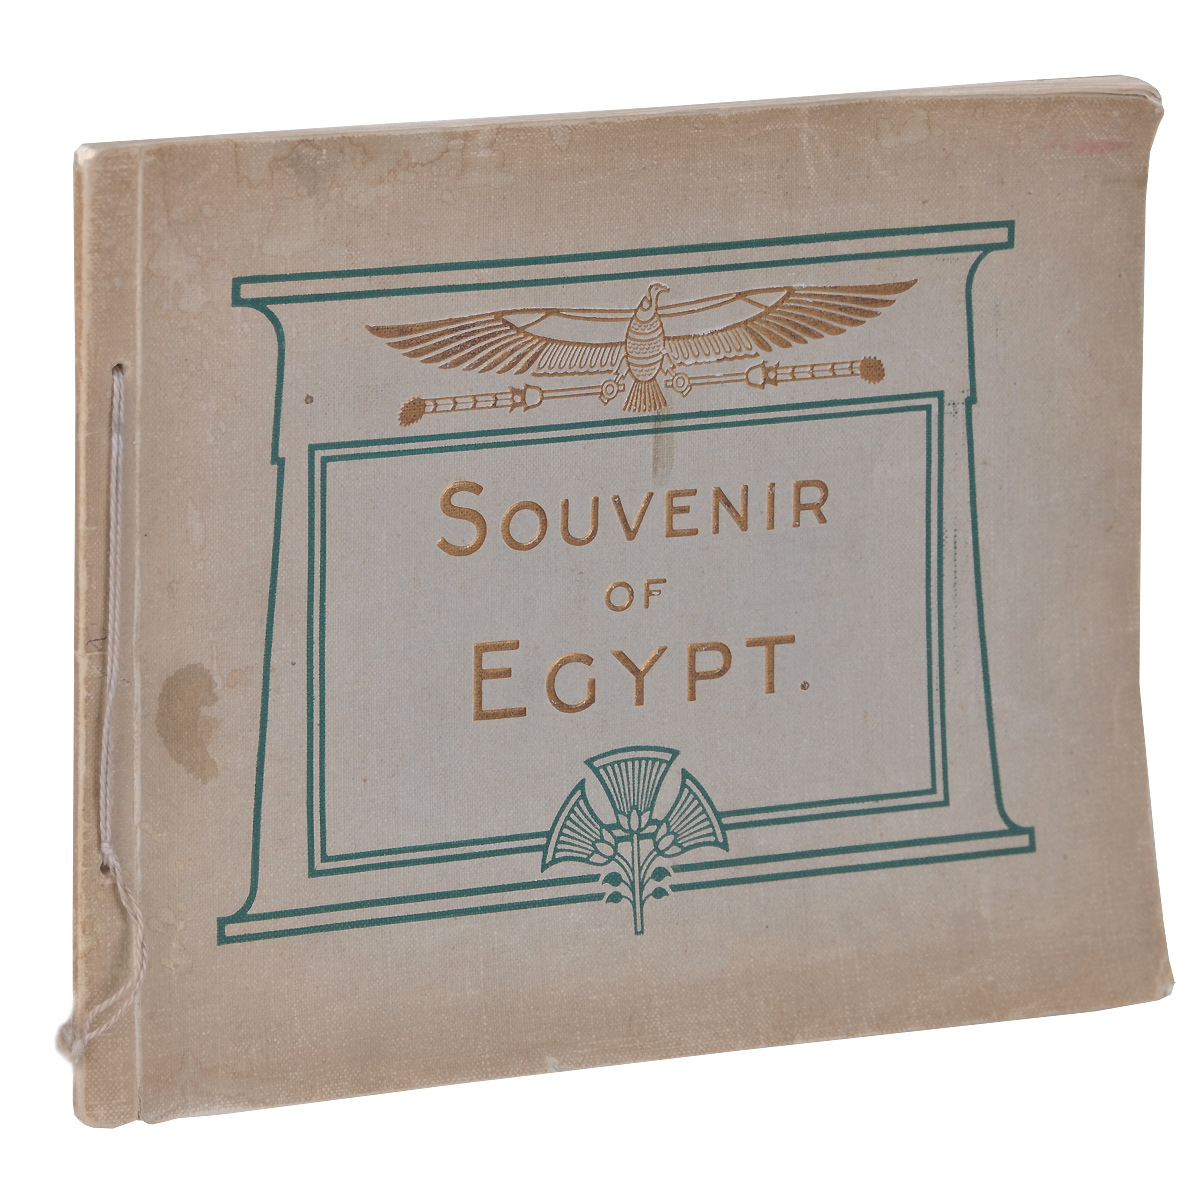 Souvenir of EgyptГУ-28Лондон, 1920 год. Tillotson Press. Издательский переплет. Сохранена оригинальная обложка. Сохранность хорошая.Album Souvenir of Egypt contains 70 illustrations of Lower and Upper Egypt. Including all the principal views of places of interest on the Nile.Издание не подлежит вывозу за пределы Российской Федерации.